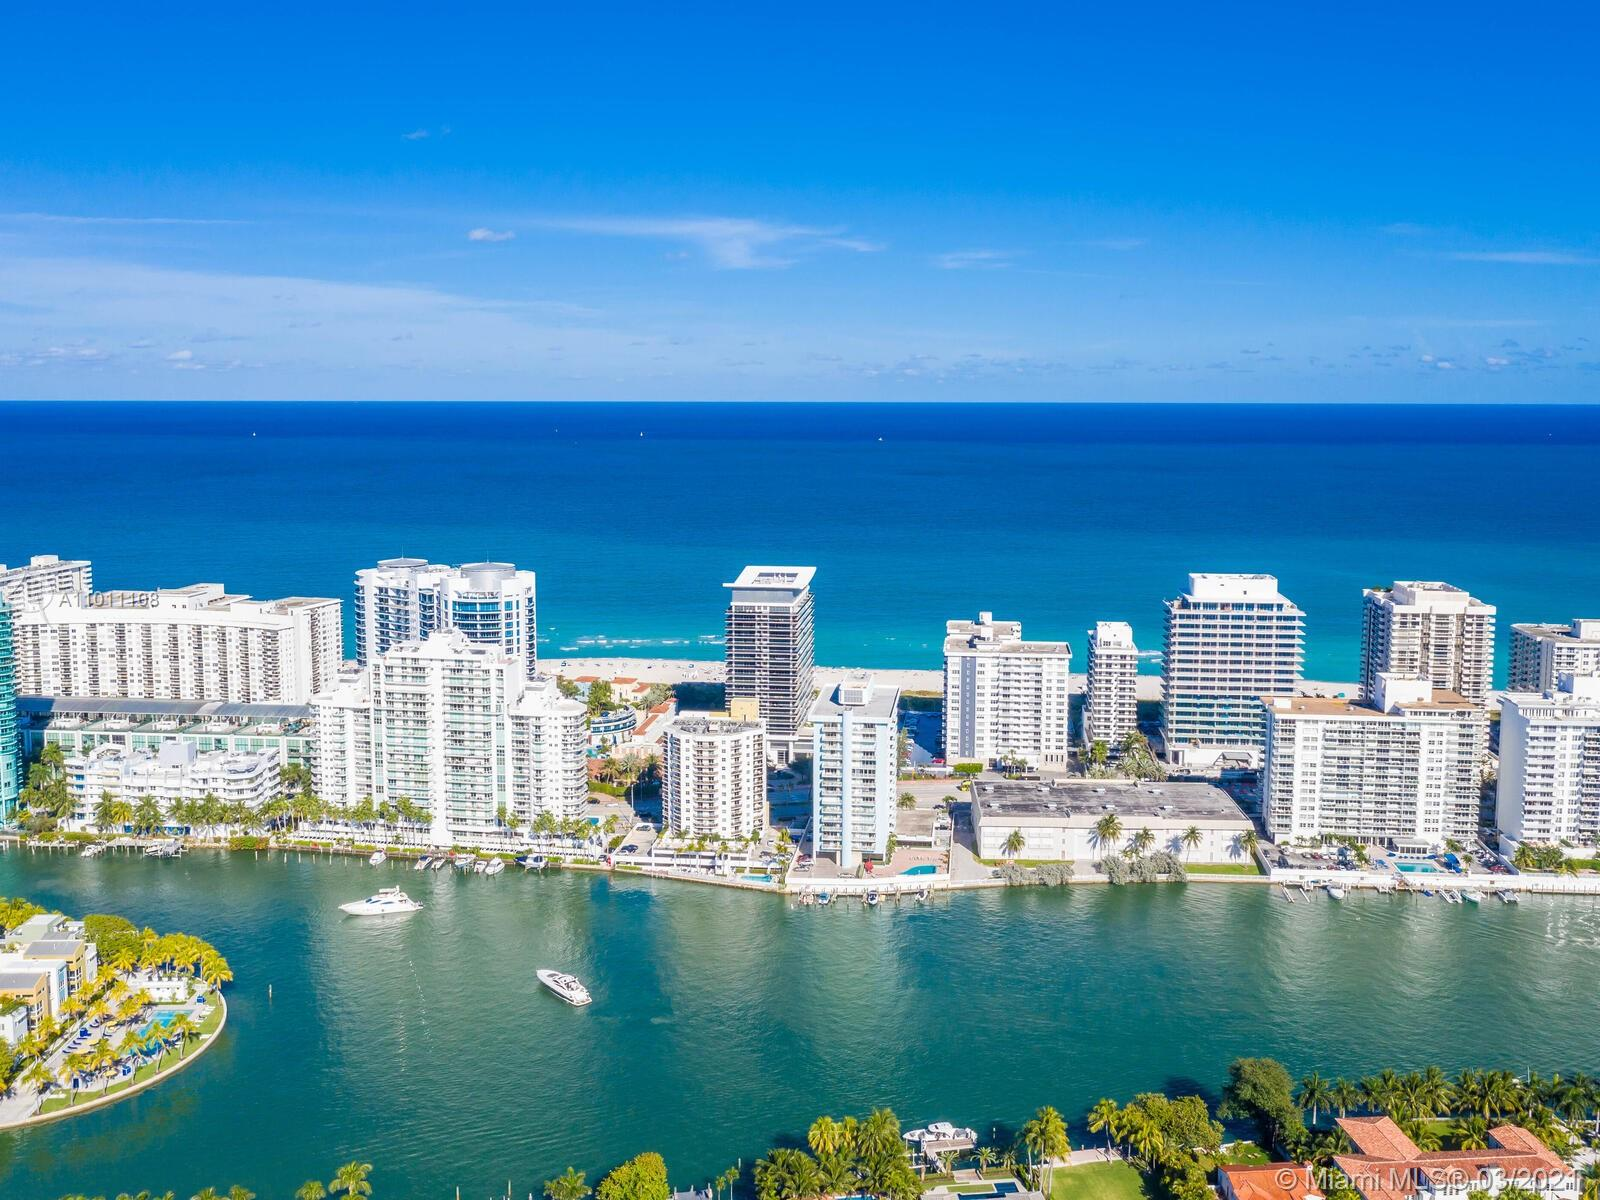 THIS EXCLUSIVE, CHIC, AND SOPHISTICATED WATERFRONT APARTMENT OFFERS 1,805 SQFT OF LUXURY LIVING SPACE. A CORNER UNIT, FEATURES 3 BEDROOMS AND 3.5 BATHS. SOARING WRAPAROUND BALCONIES, IMPACT WINDOWS. THE MOMENT YOU WALK IN YOU WILL BE FASCINATED BY UNOBSTRUCTED VIEWS OF THE ATLANTIC OCEAN, THE INTRACOASTAL, SOBE, AND NORTH VIEWS. MEI IS A BOUTIQUE BUILDING WITH AN INCREDIBLE LOBBY ATMOSPHERE 24/7 SECURITY, STATE OF THE ART TECHNO GYM, BEACH SERVICES, YOGA STUDIO, SPA, VALET PARKING.